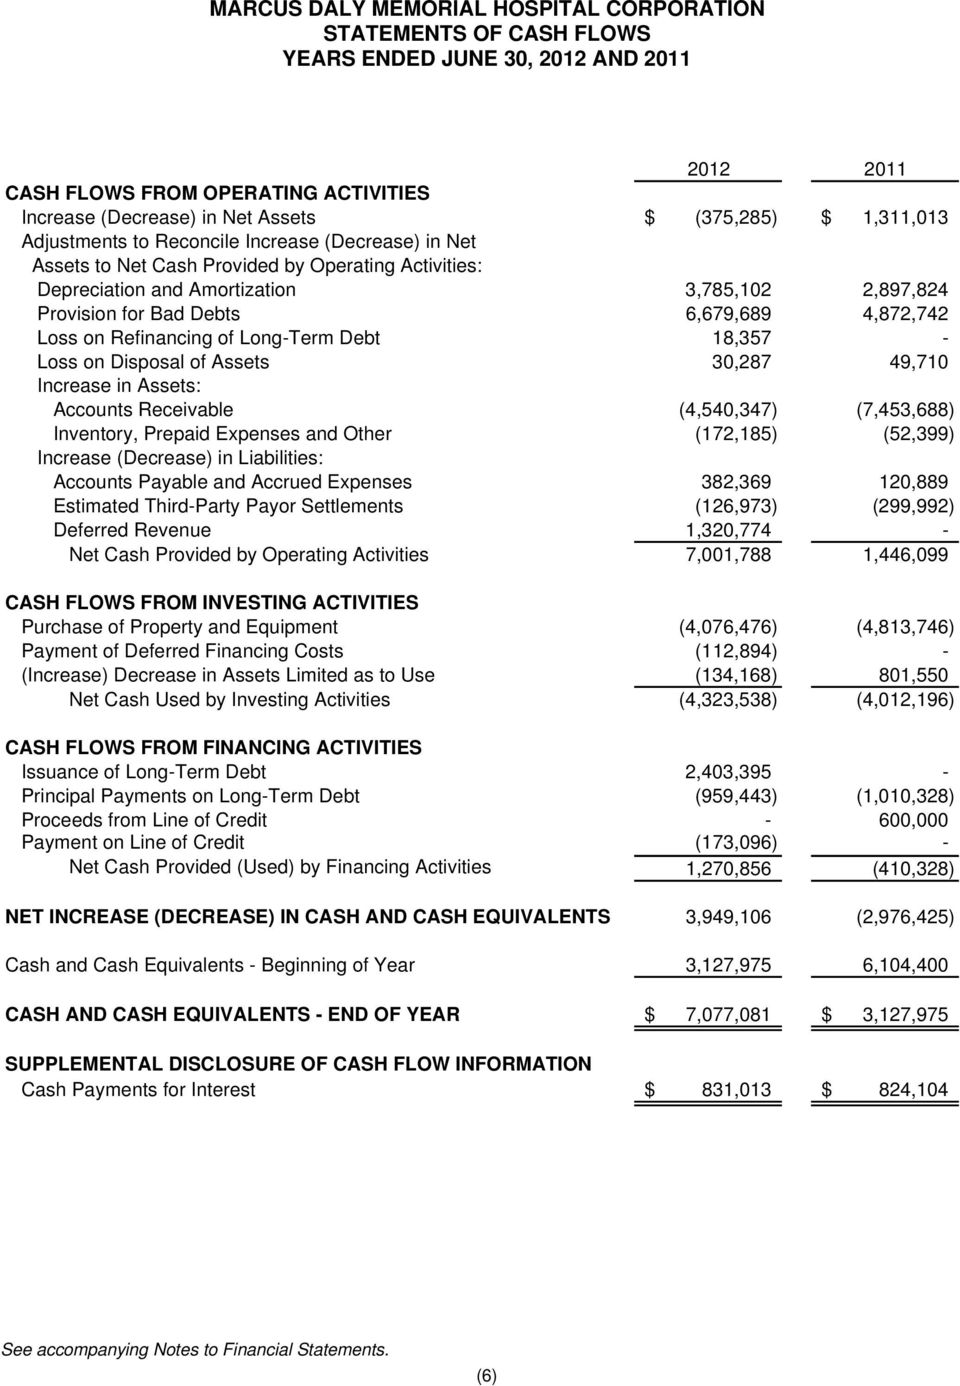 Assets 30,287 49,710 Increase in Assets: Accounts Receivable (4,540,347) (7,453,688) Inventory, Prepaid Expenses and Other (172,185) (52,399) Increase (Decrease) in Liabilities: Accounts Payable and